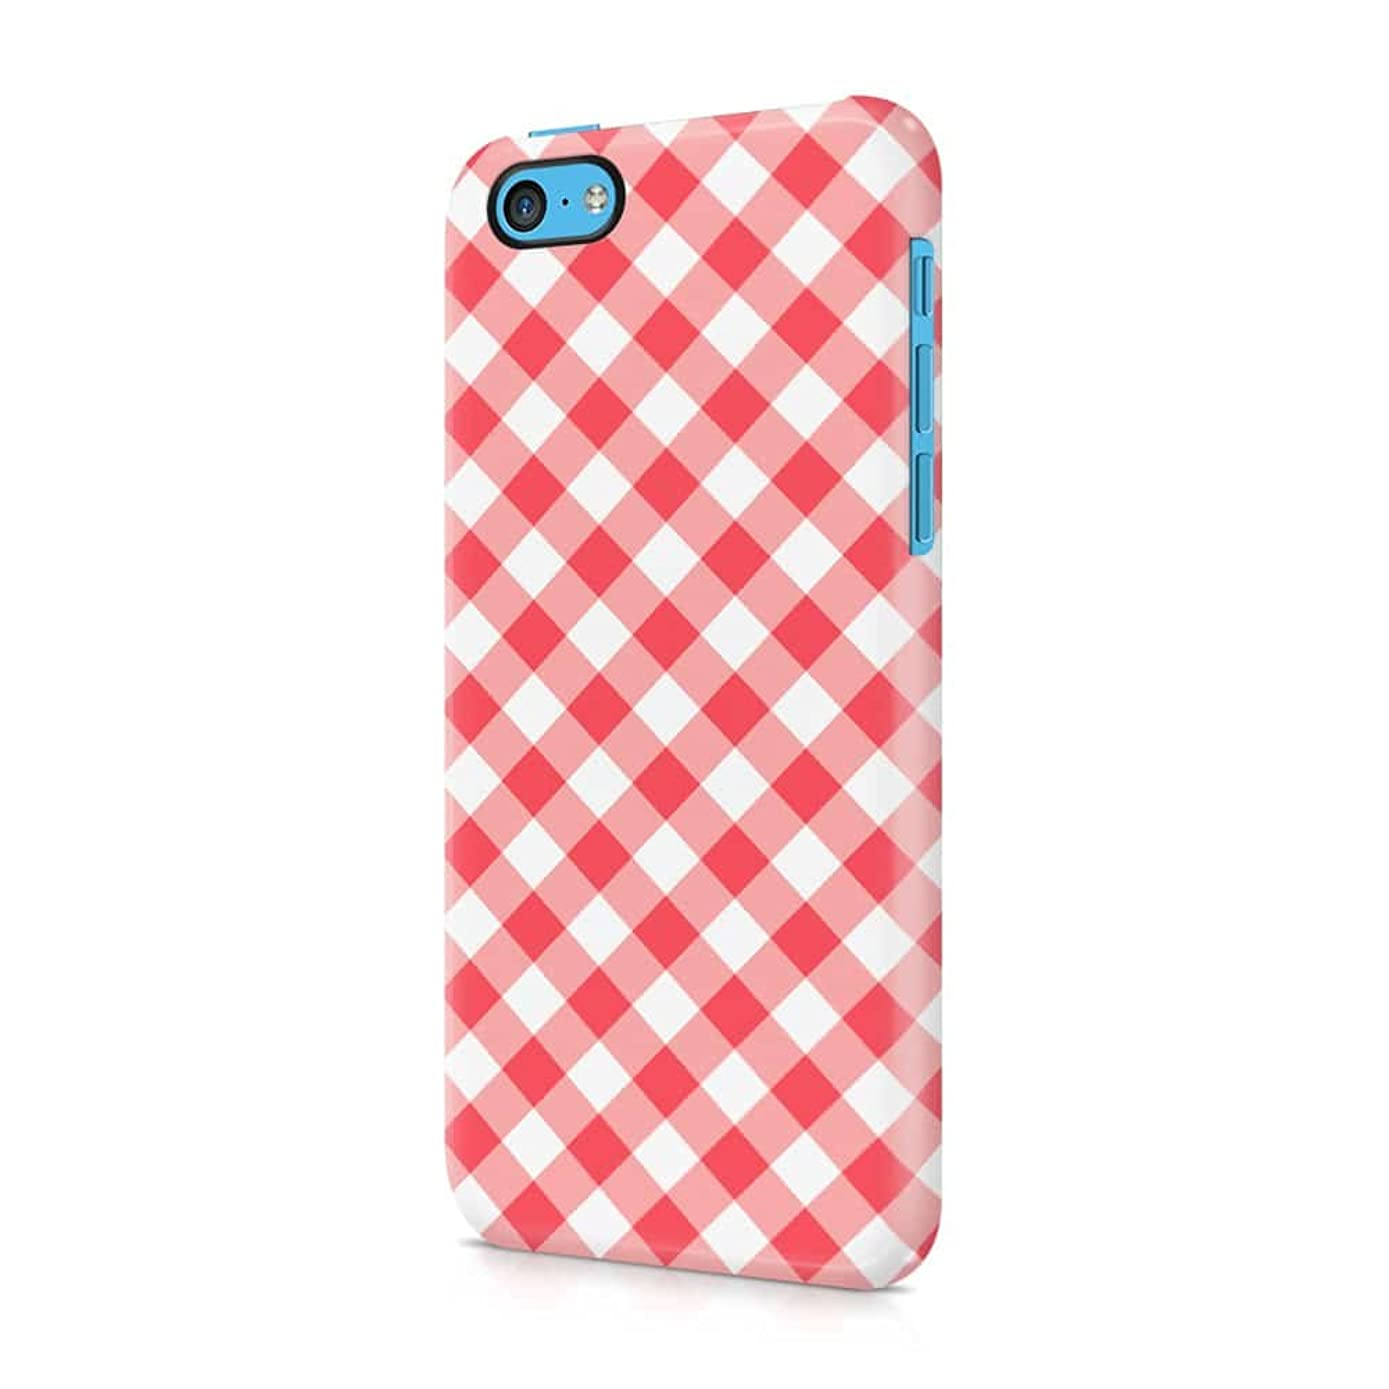 Red Vintage Checkered Tablecloth Pattern Apple iPhone 5c Plastic Phone Protective Case Cover